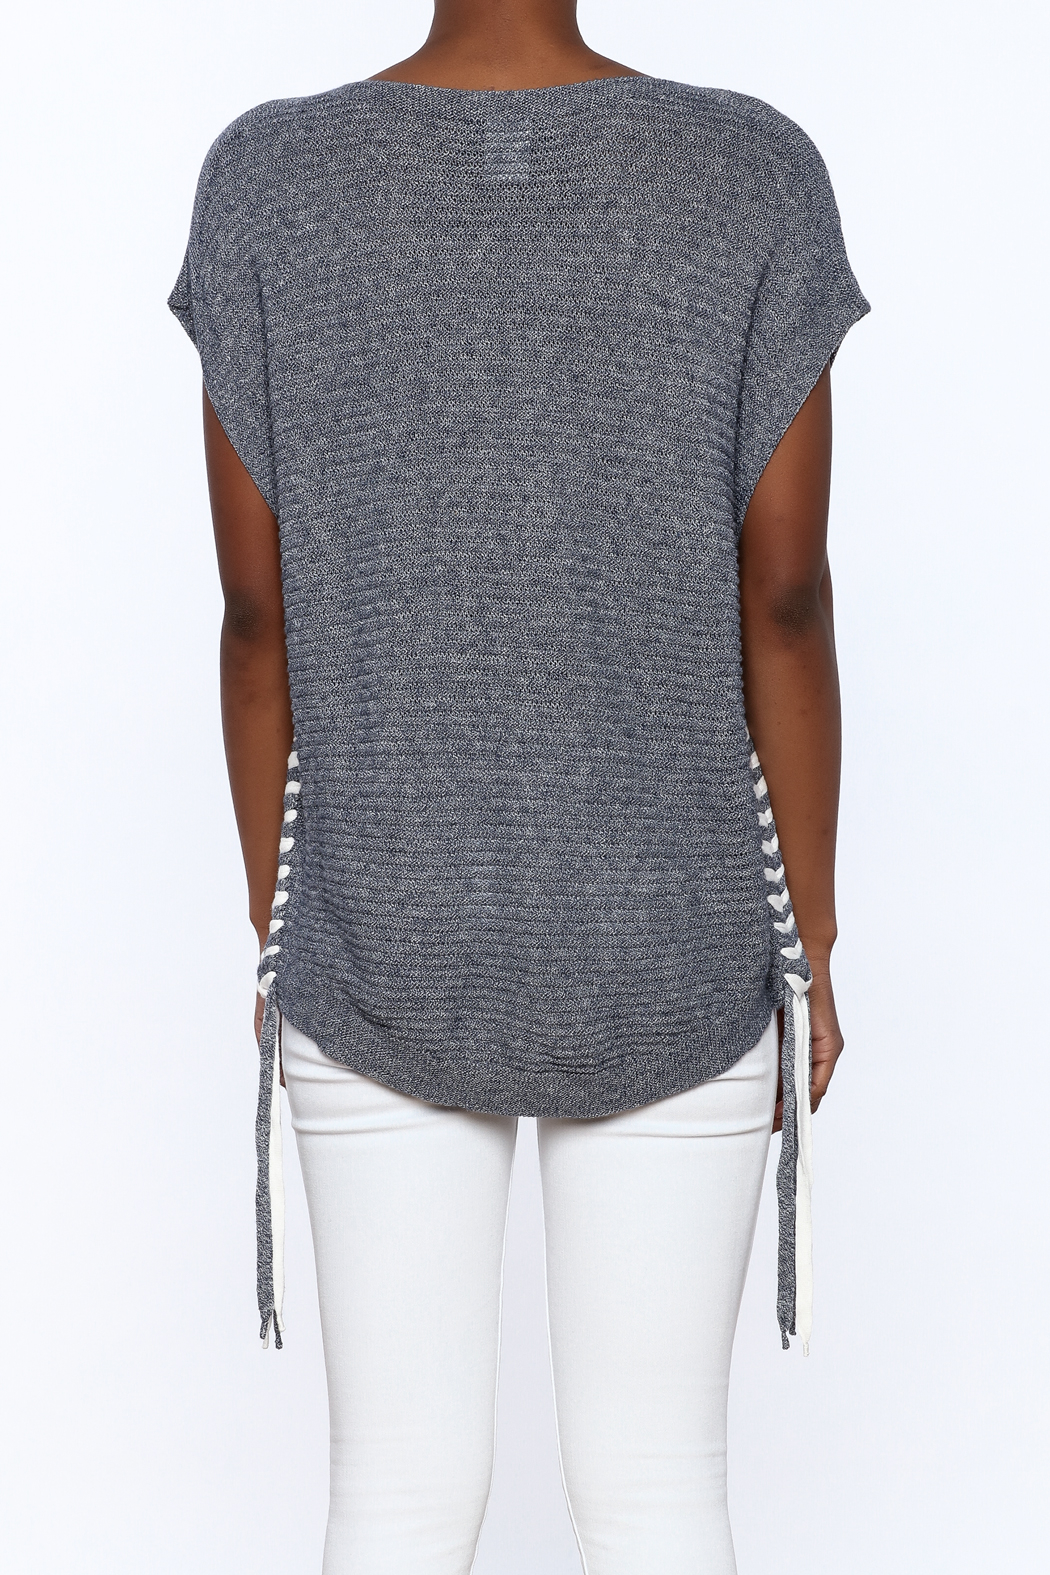 zoe couture Grey Tunic Sweater - Back Cropped Image